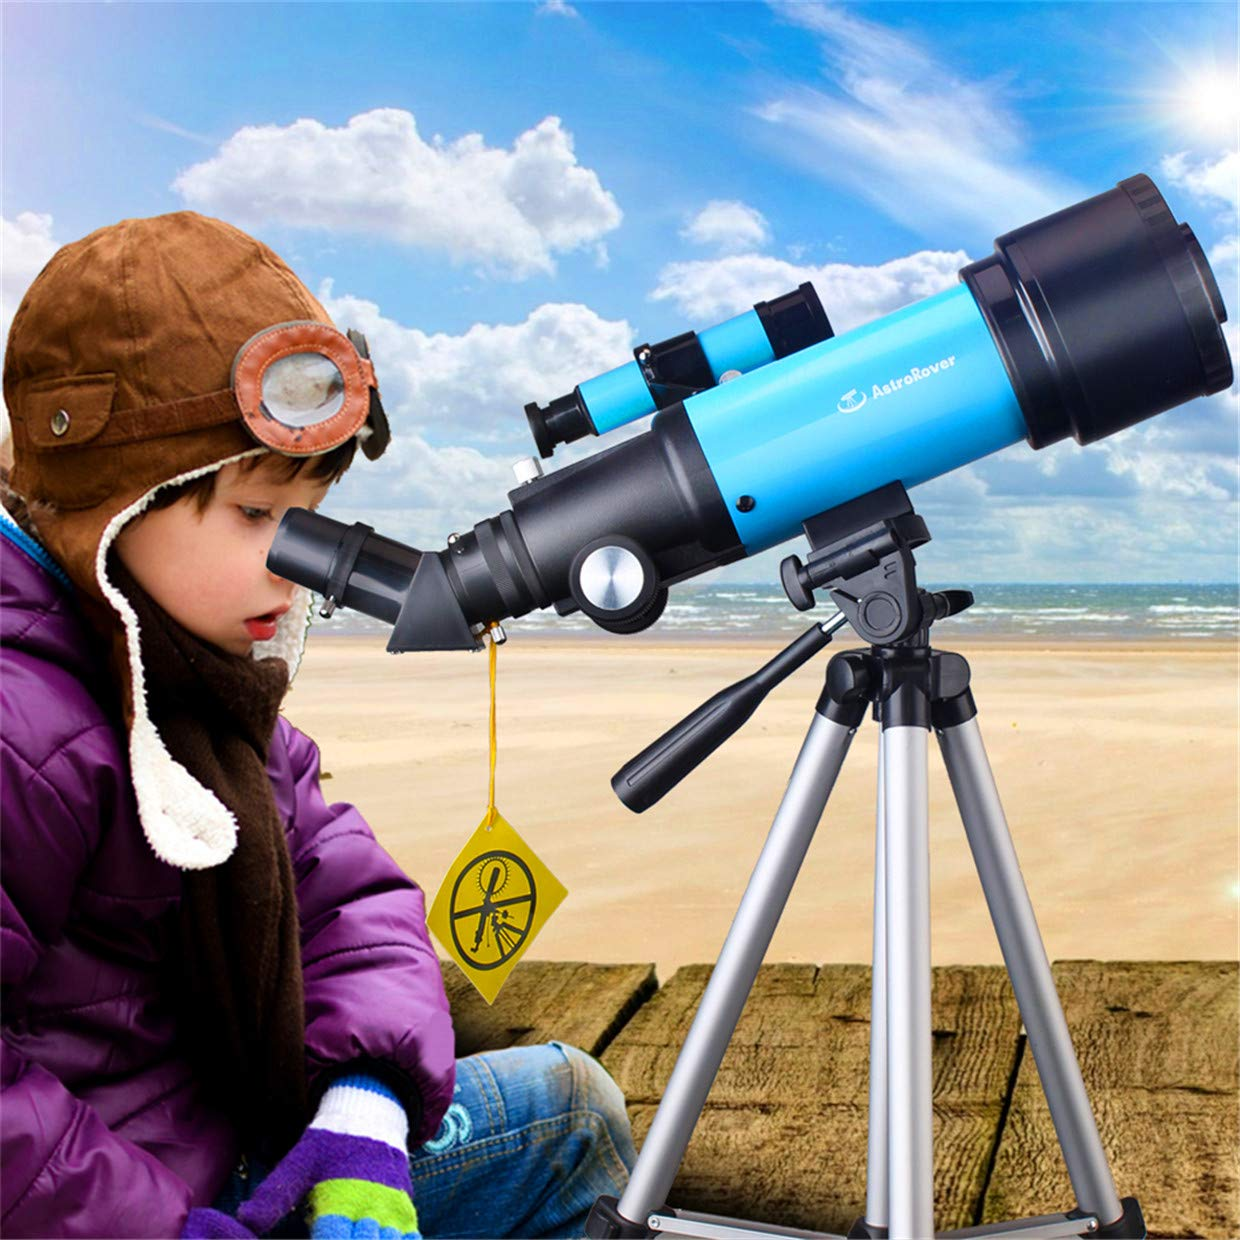 JingleStar Telescope for Kids Beginners, 70mm Astronomical Refracter Telescope - Travel Scope with Tripod & Finder Scope - Perfect for Children Educational and Gift (Blue) by JingleStar